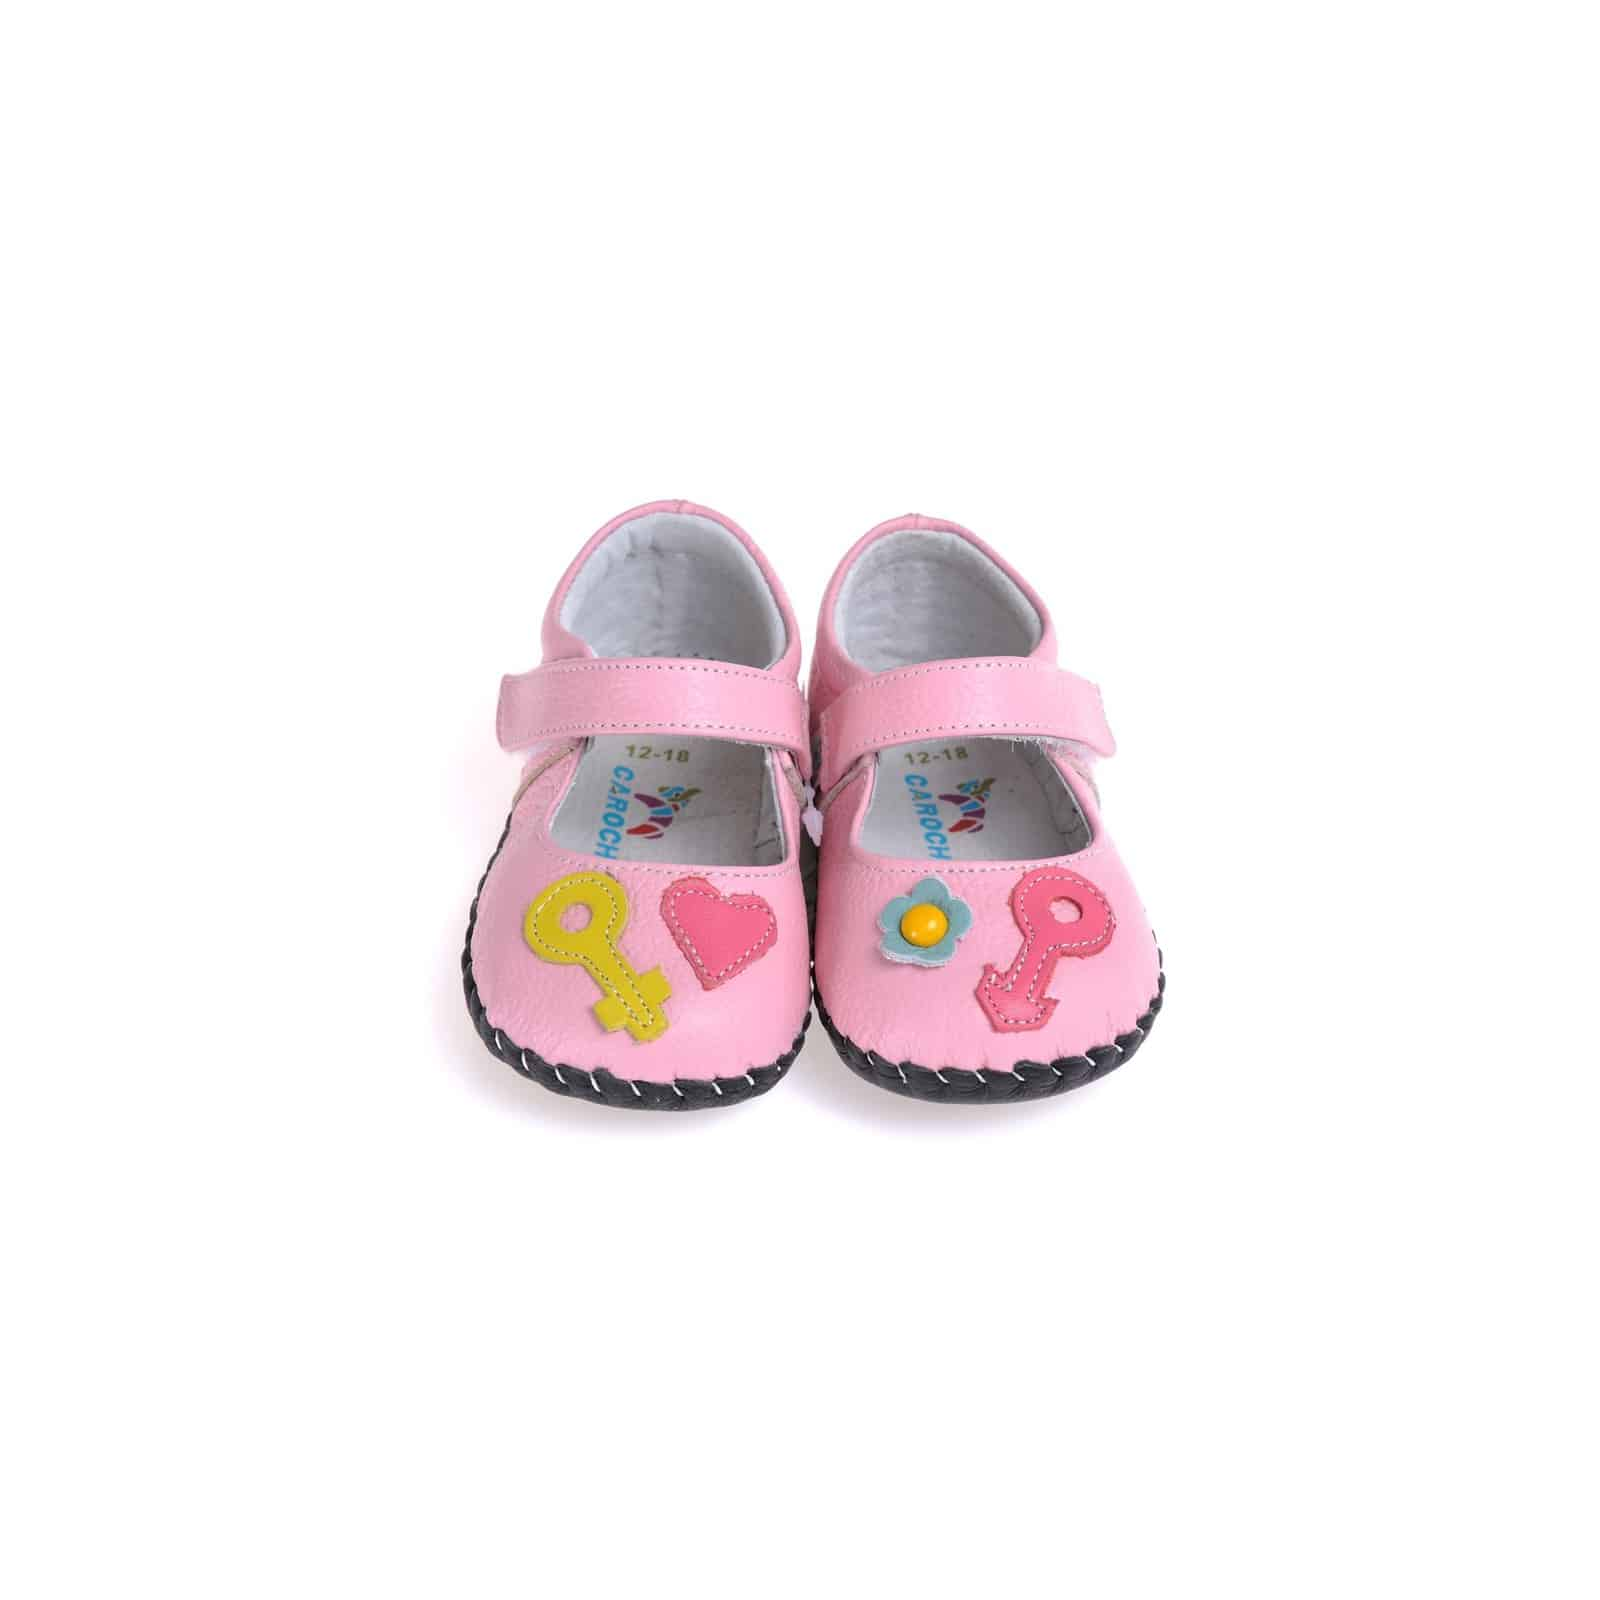 Shoes for Beginning Walkers. Keep your babies confident and happy while they learn to walk with soft baby shoes from Stride Rite. Built for first steps, our safety-focused design for soft sole baby shoes gives everyone peace of mind.